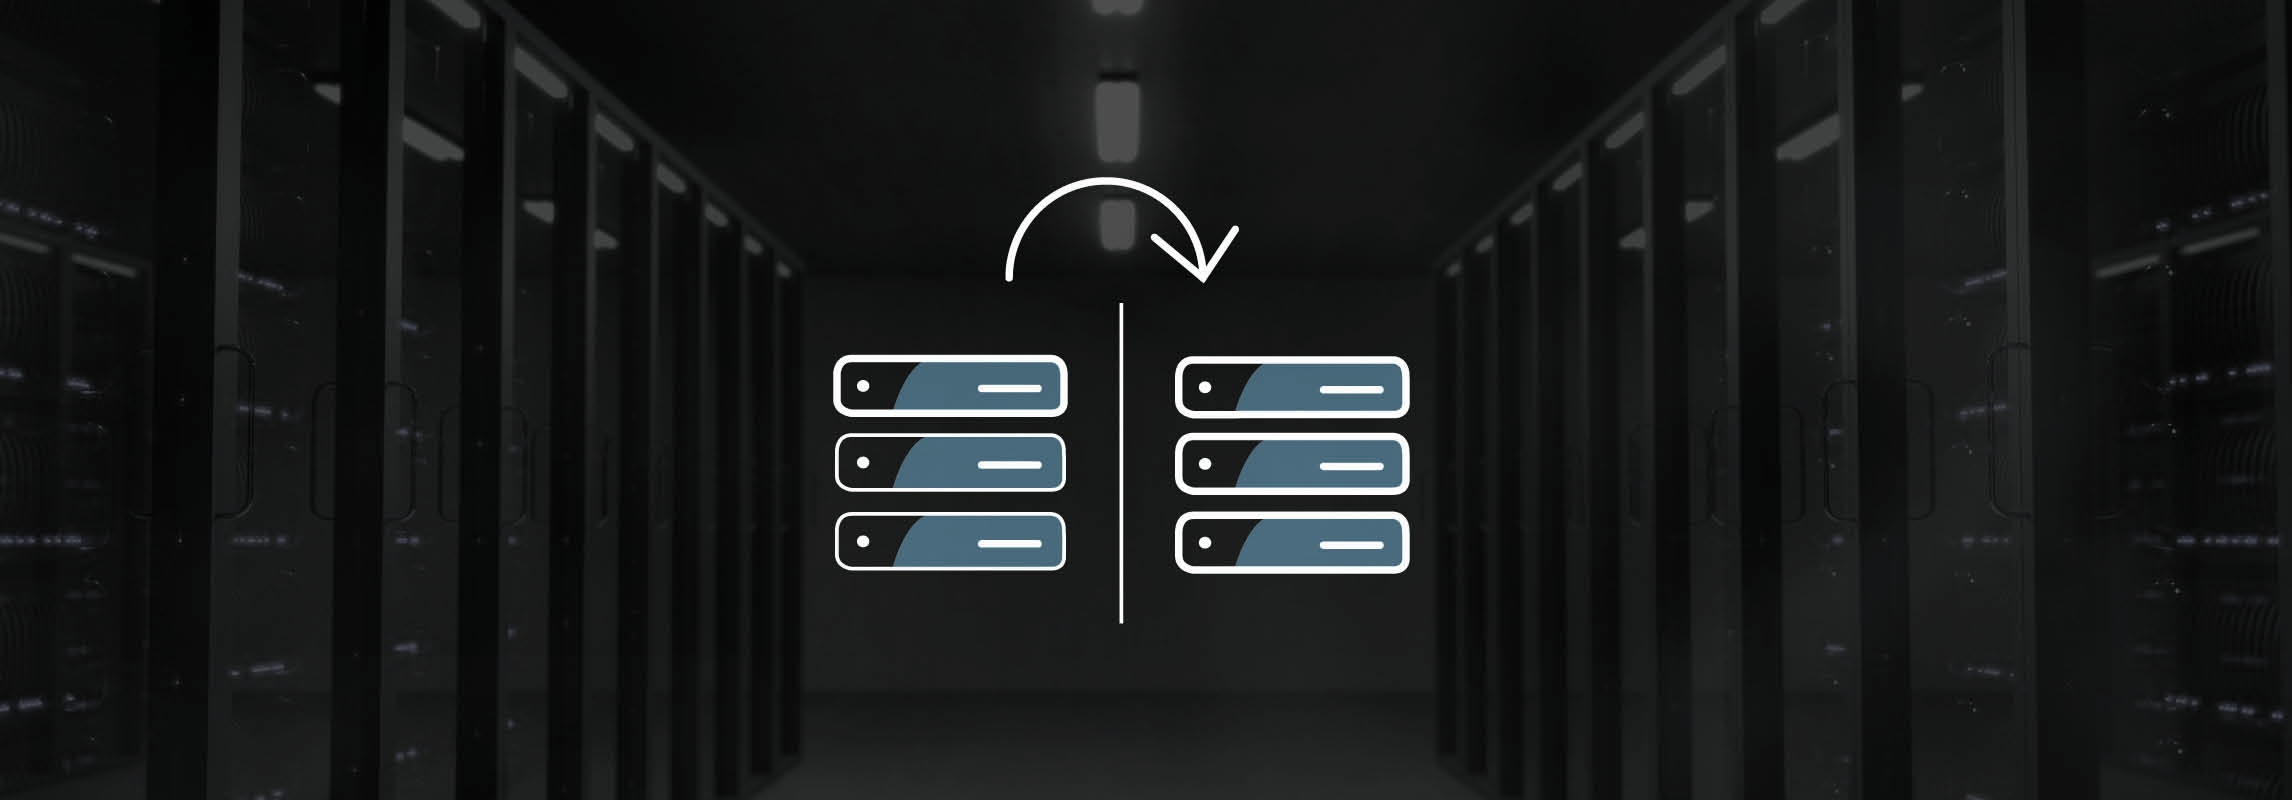 Server room with icon in the background showing the process of a system copy